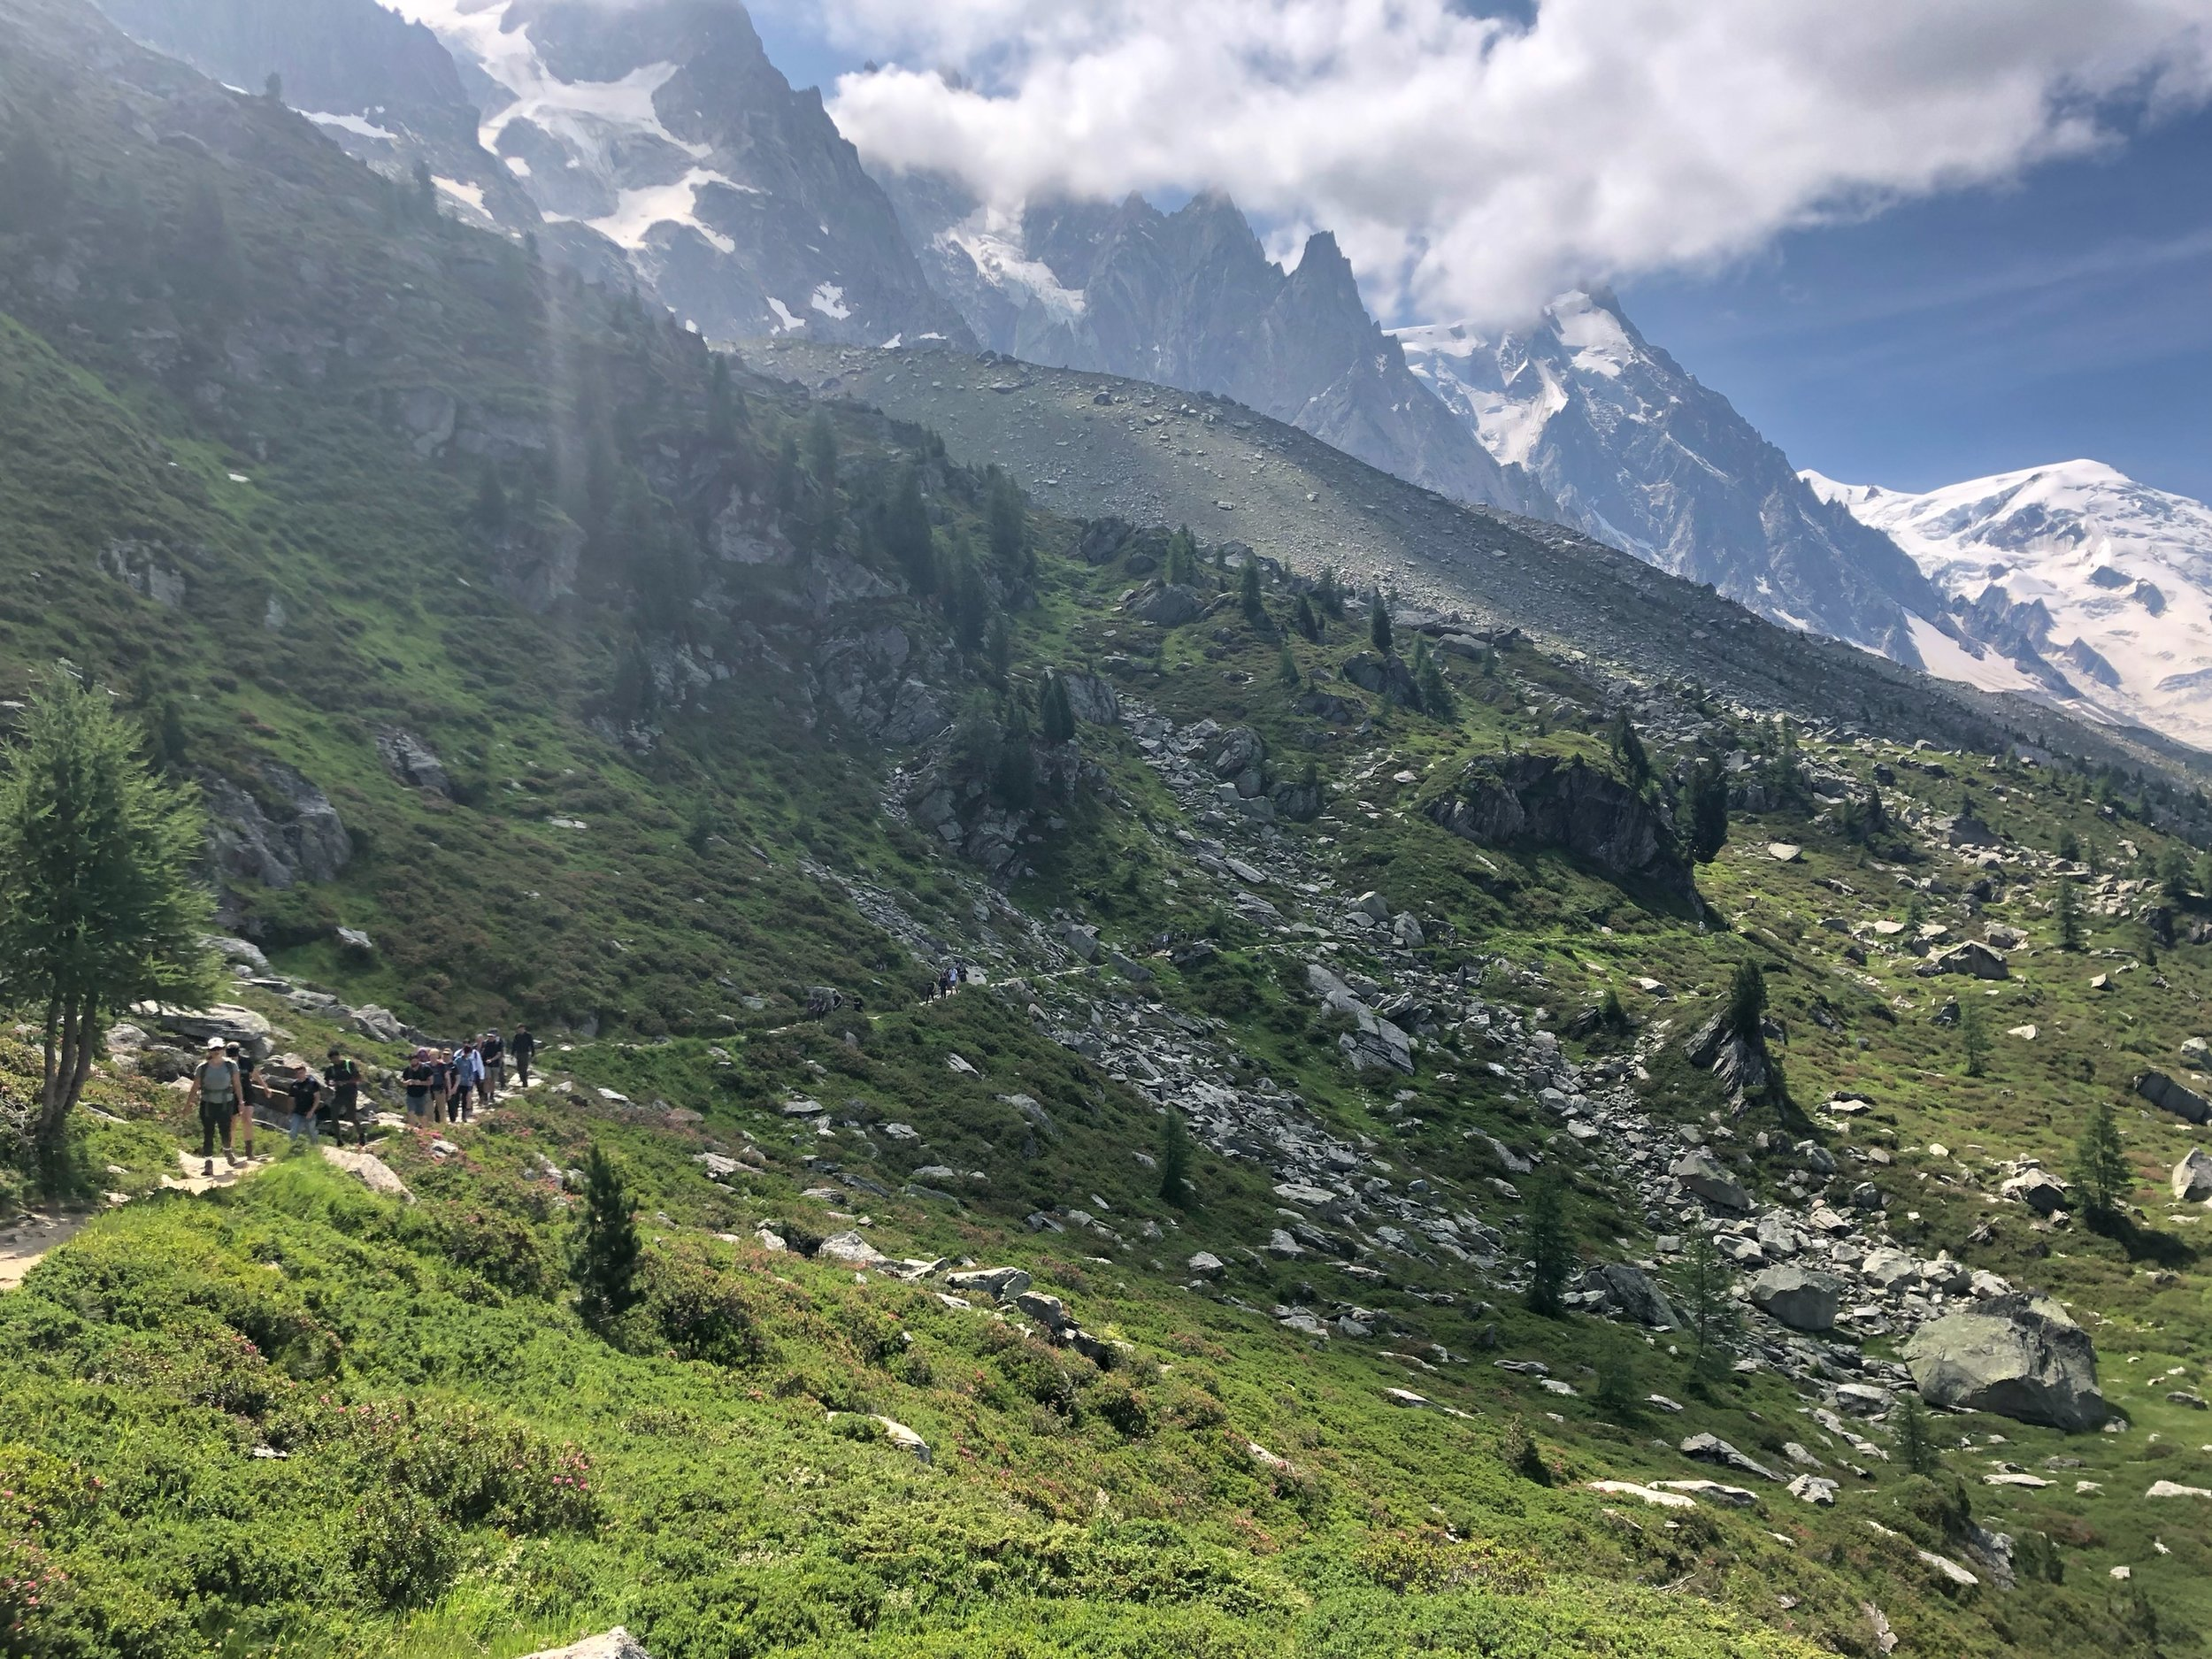 Students hiking above the Chamonix Valley